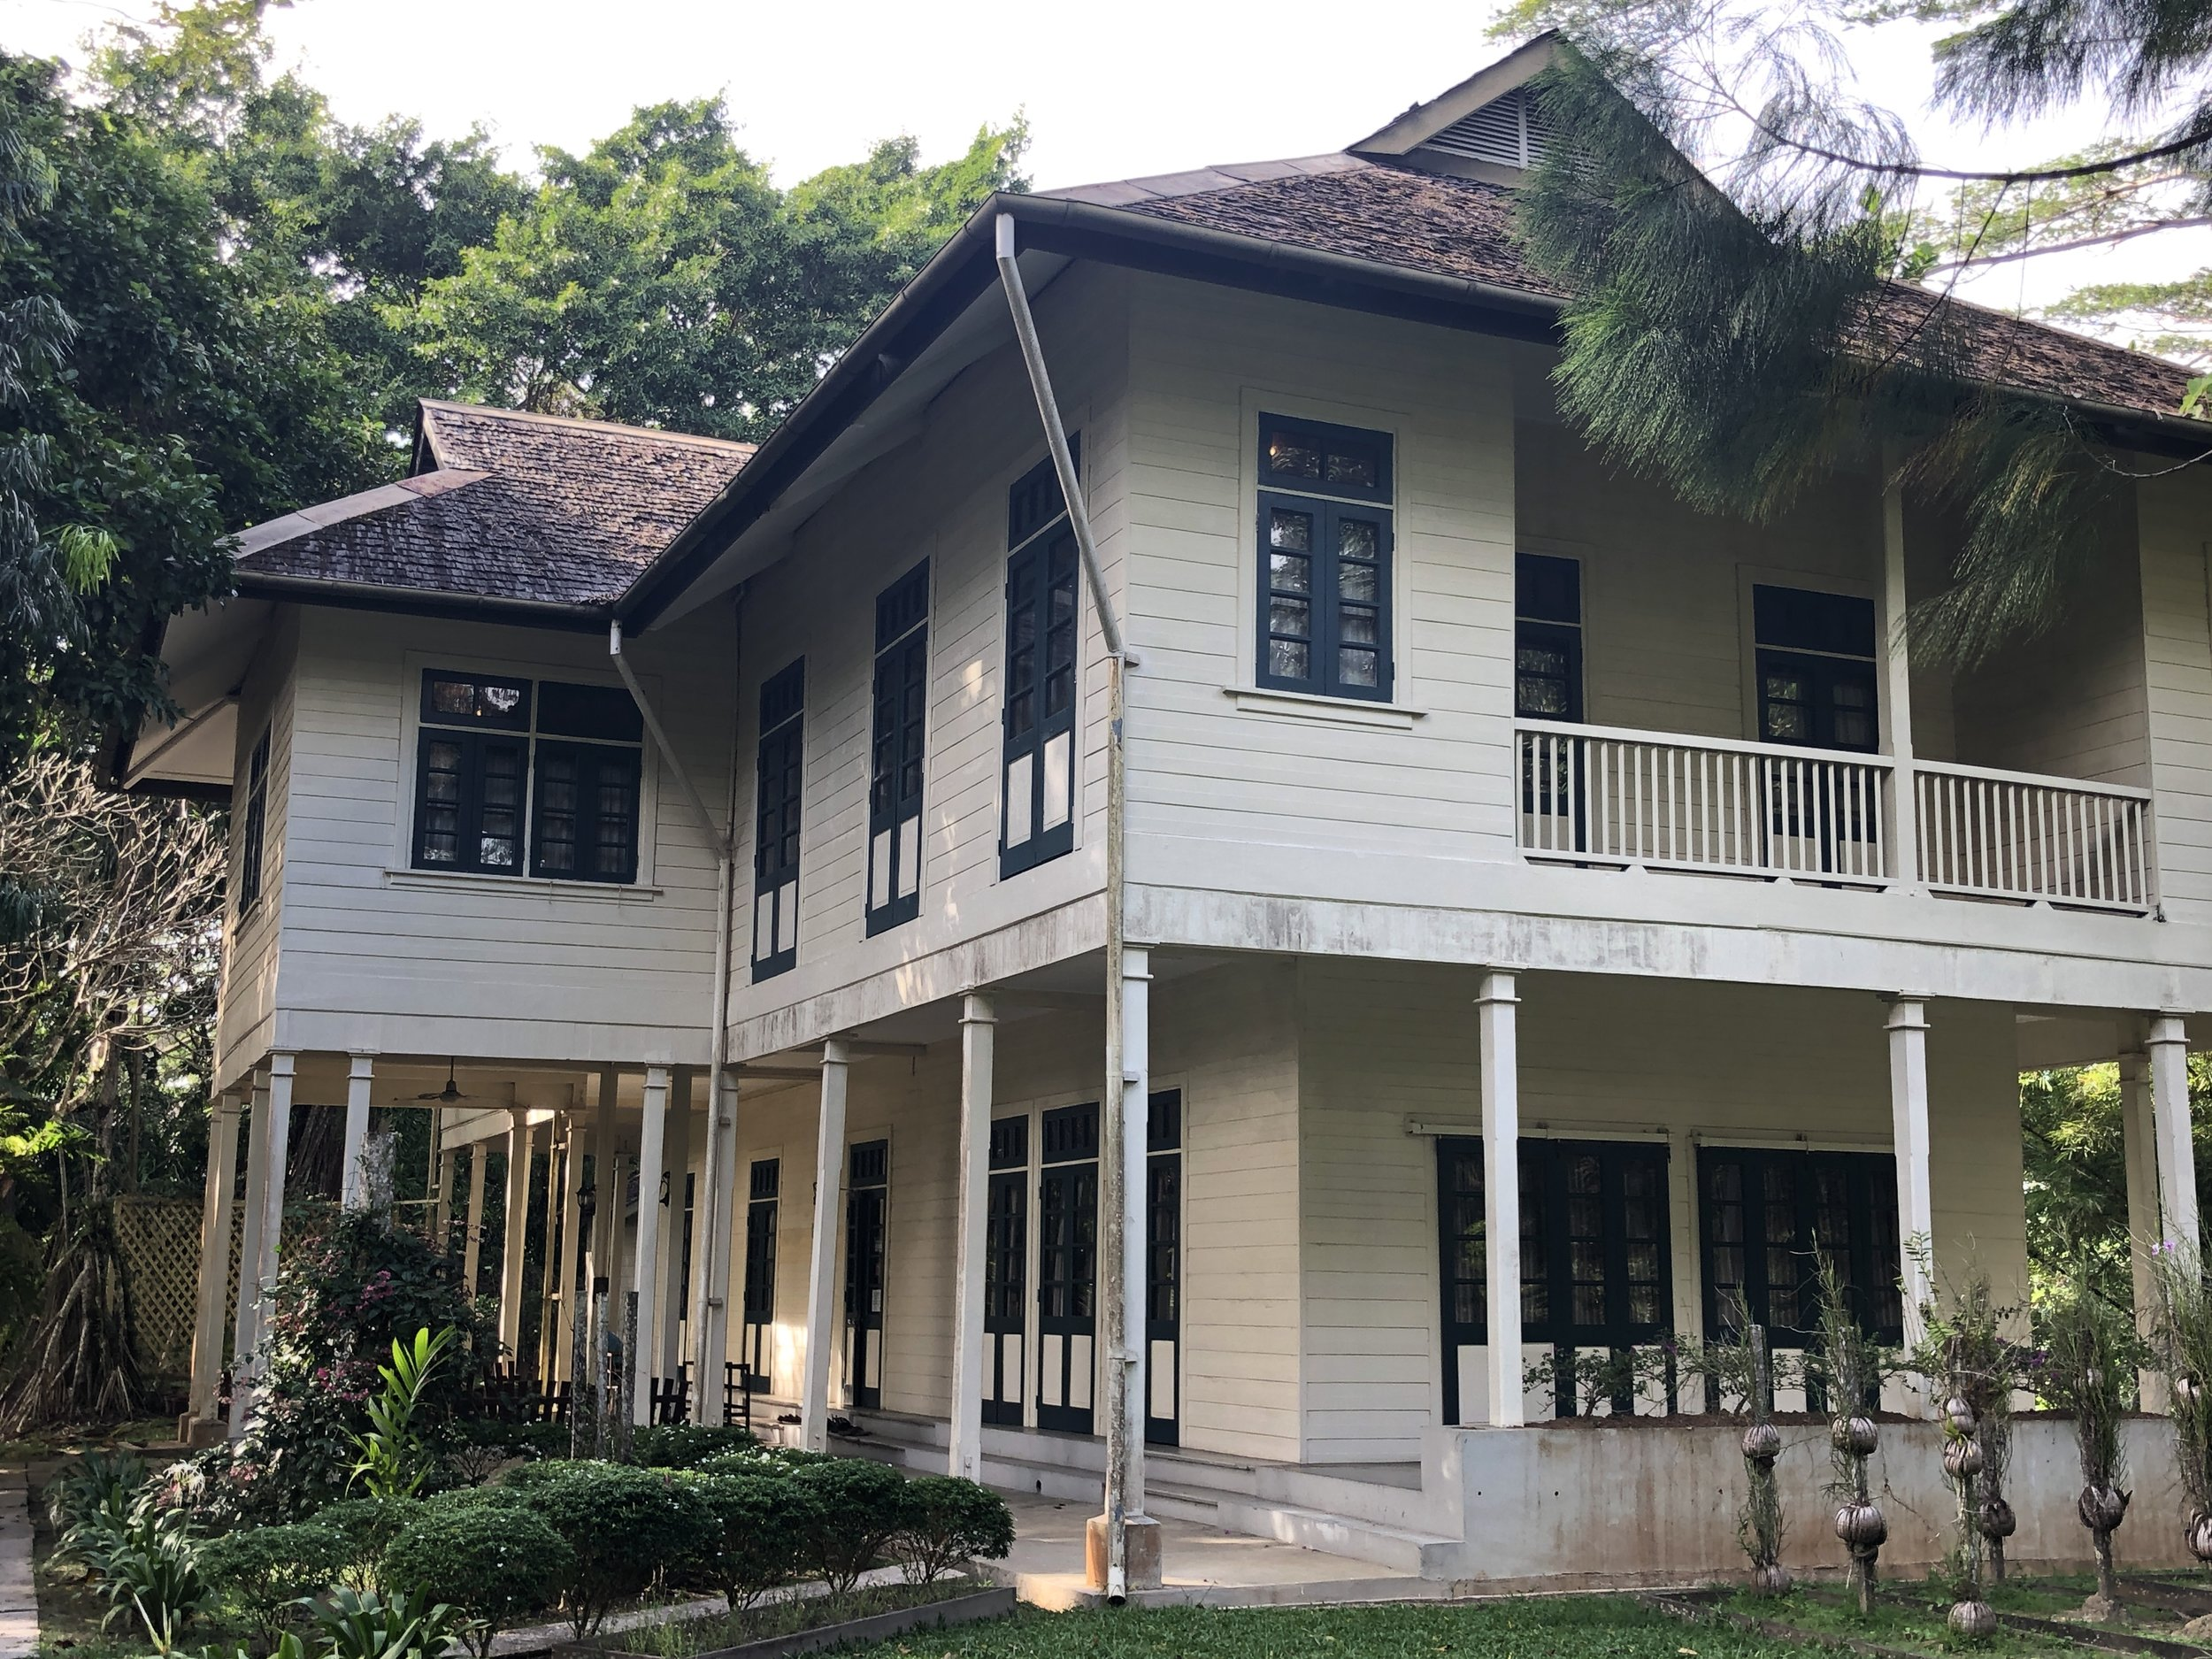 Agnes Keith's house in Sandakan: American author Agnes Keith wrote a series of books about her experiences living in post-war North Borneo